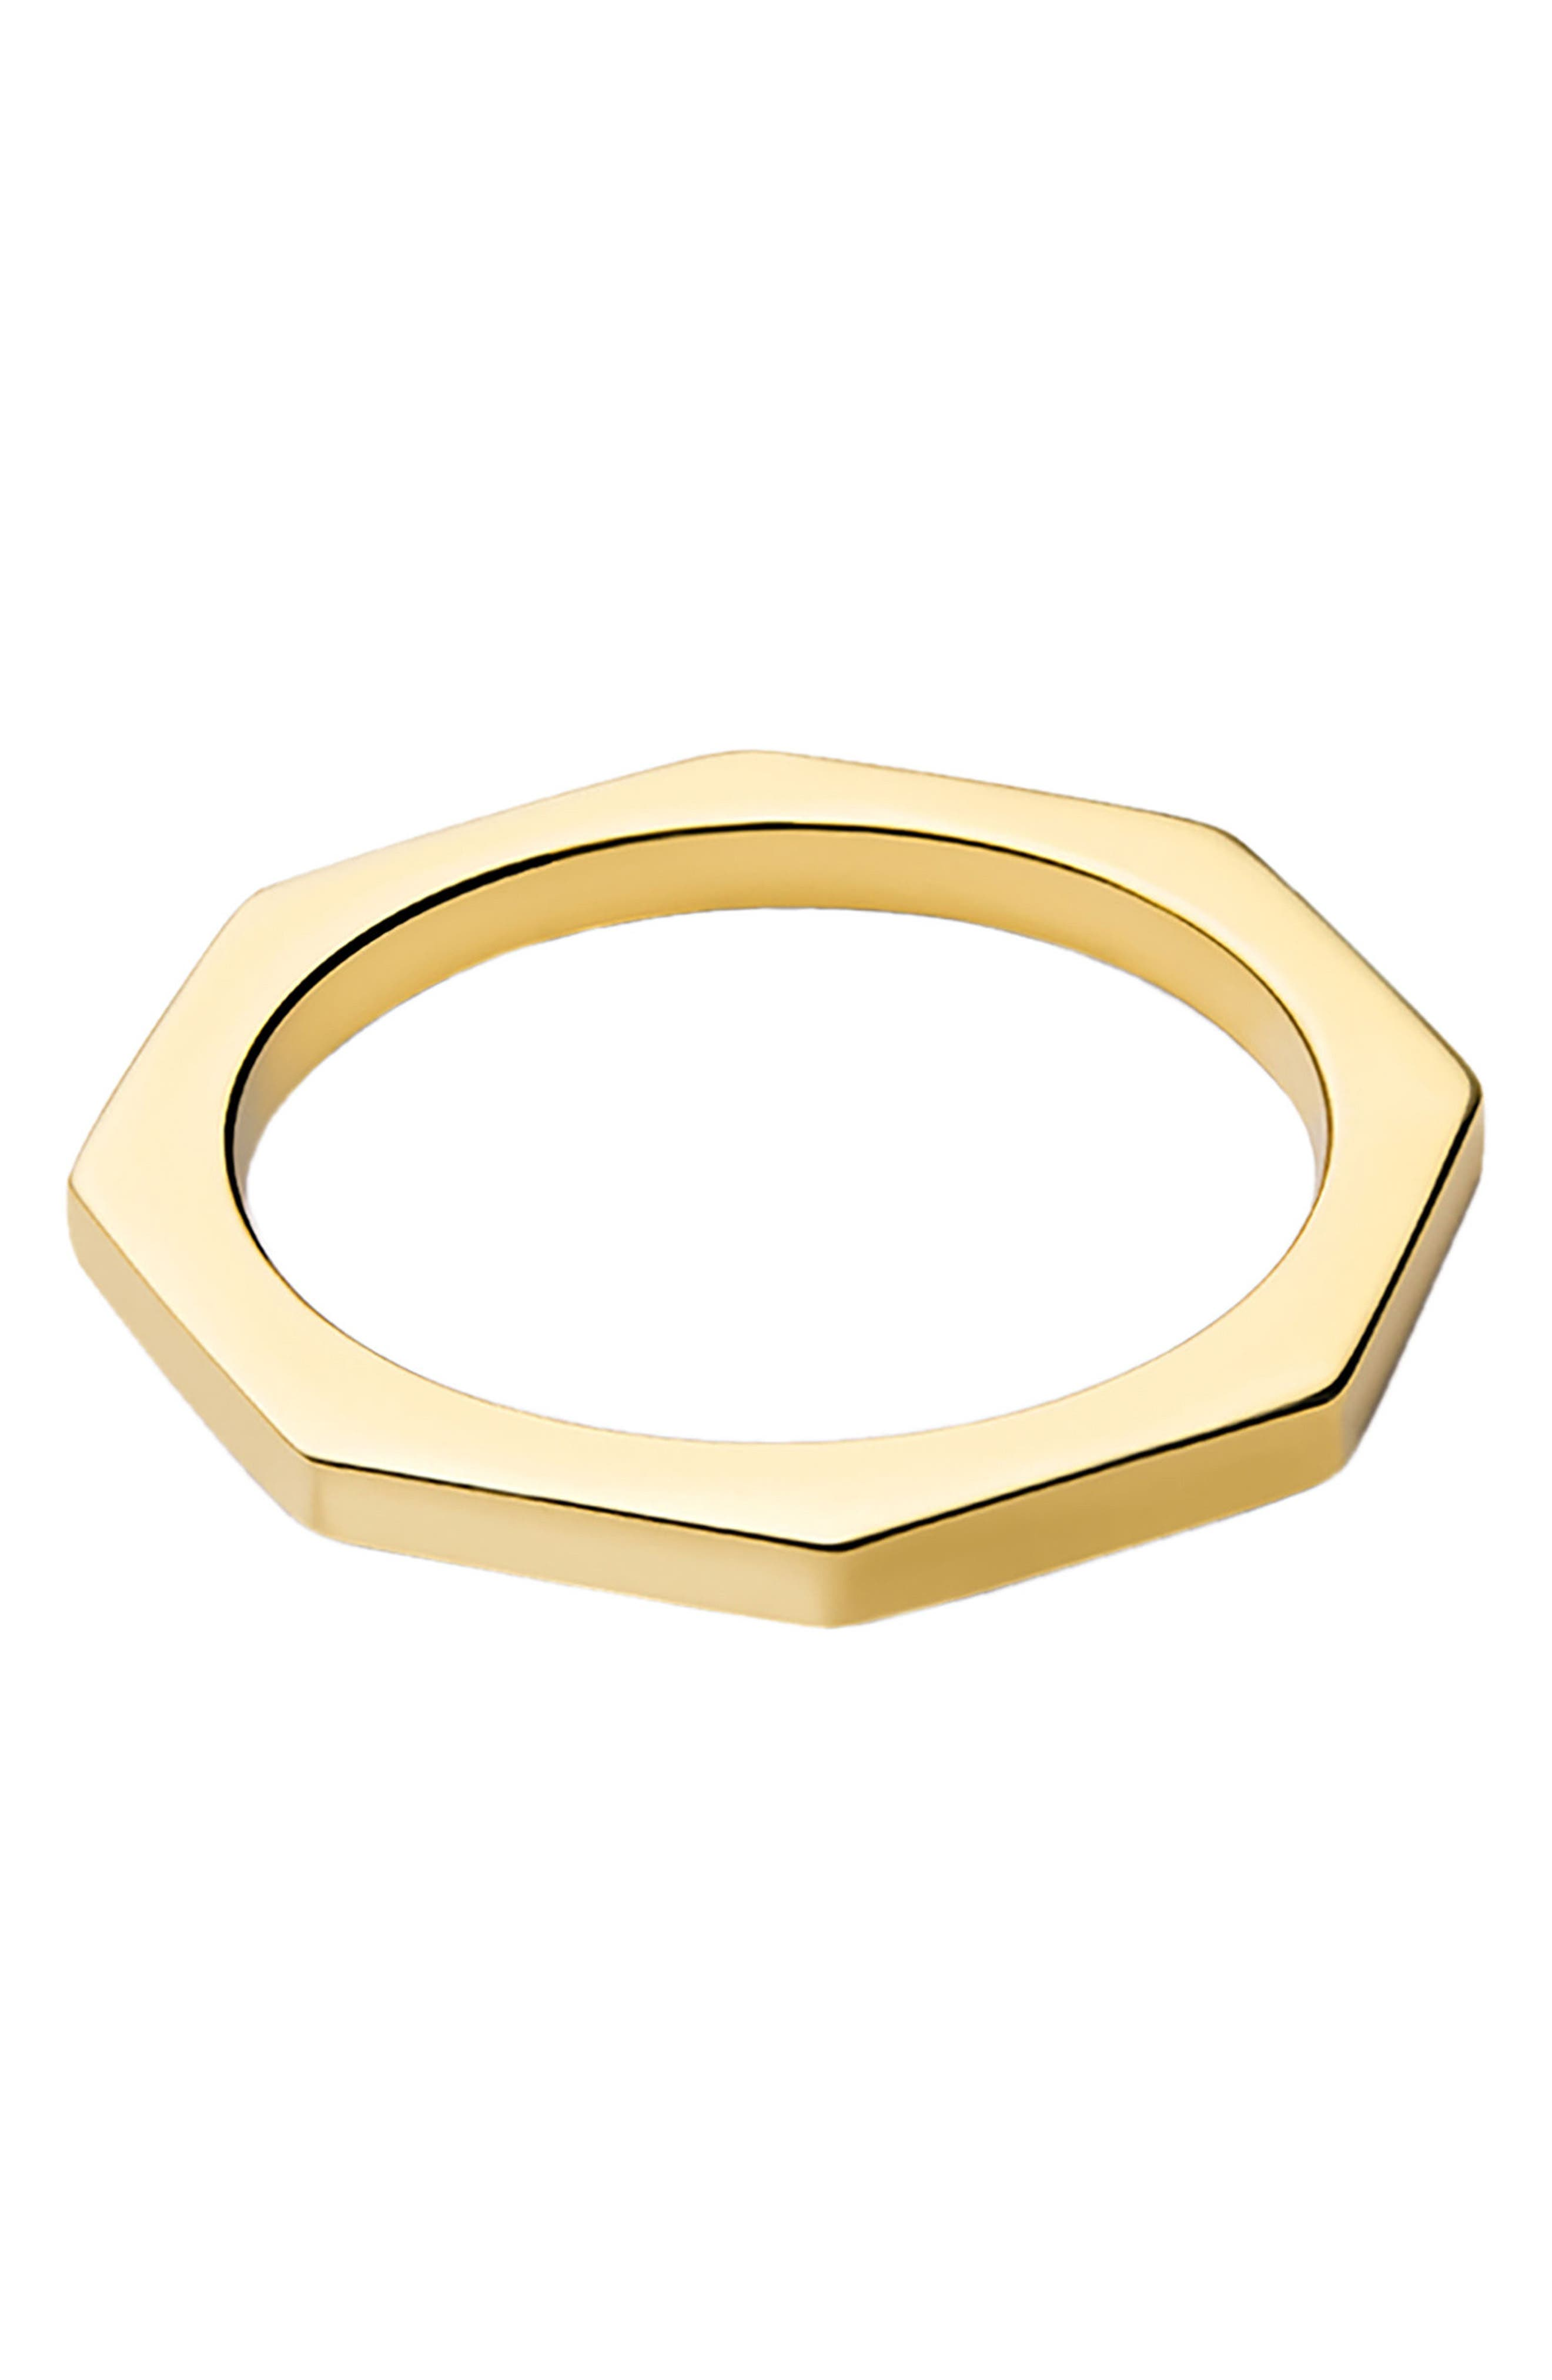 Bly Ring,                         Main,                         color, Gold